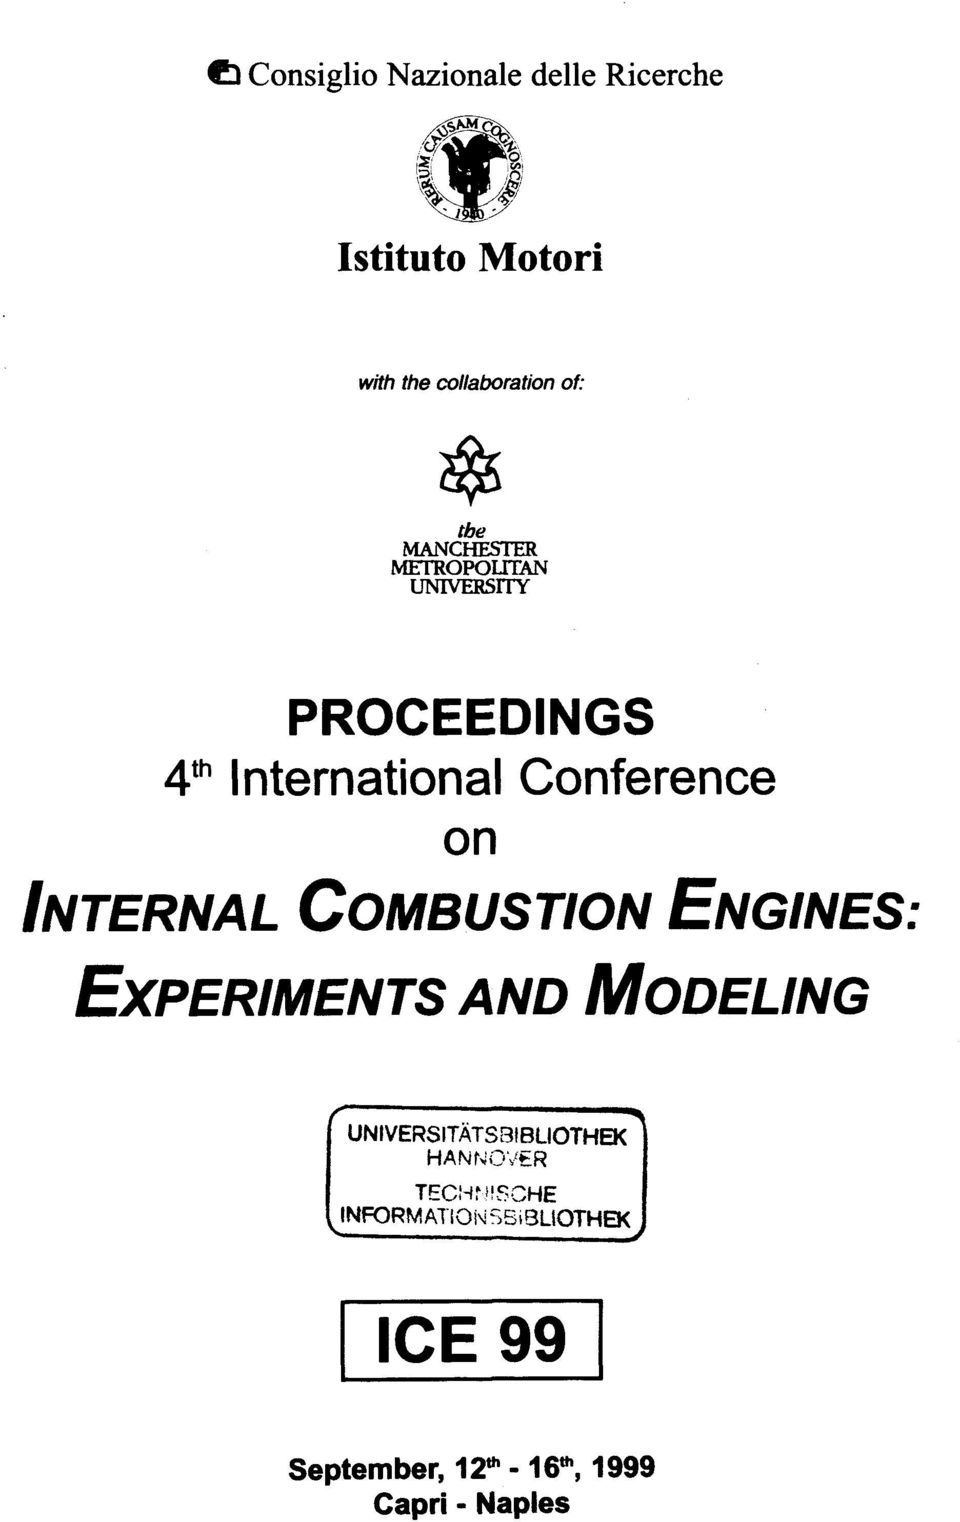 INTERNAL COMBUSTION ENGINES: EXPERIMENTS AND MODELING UNIVERSITATS3IBLIOTHEK